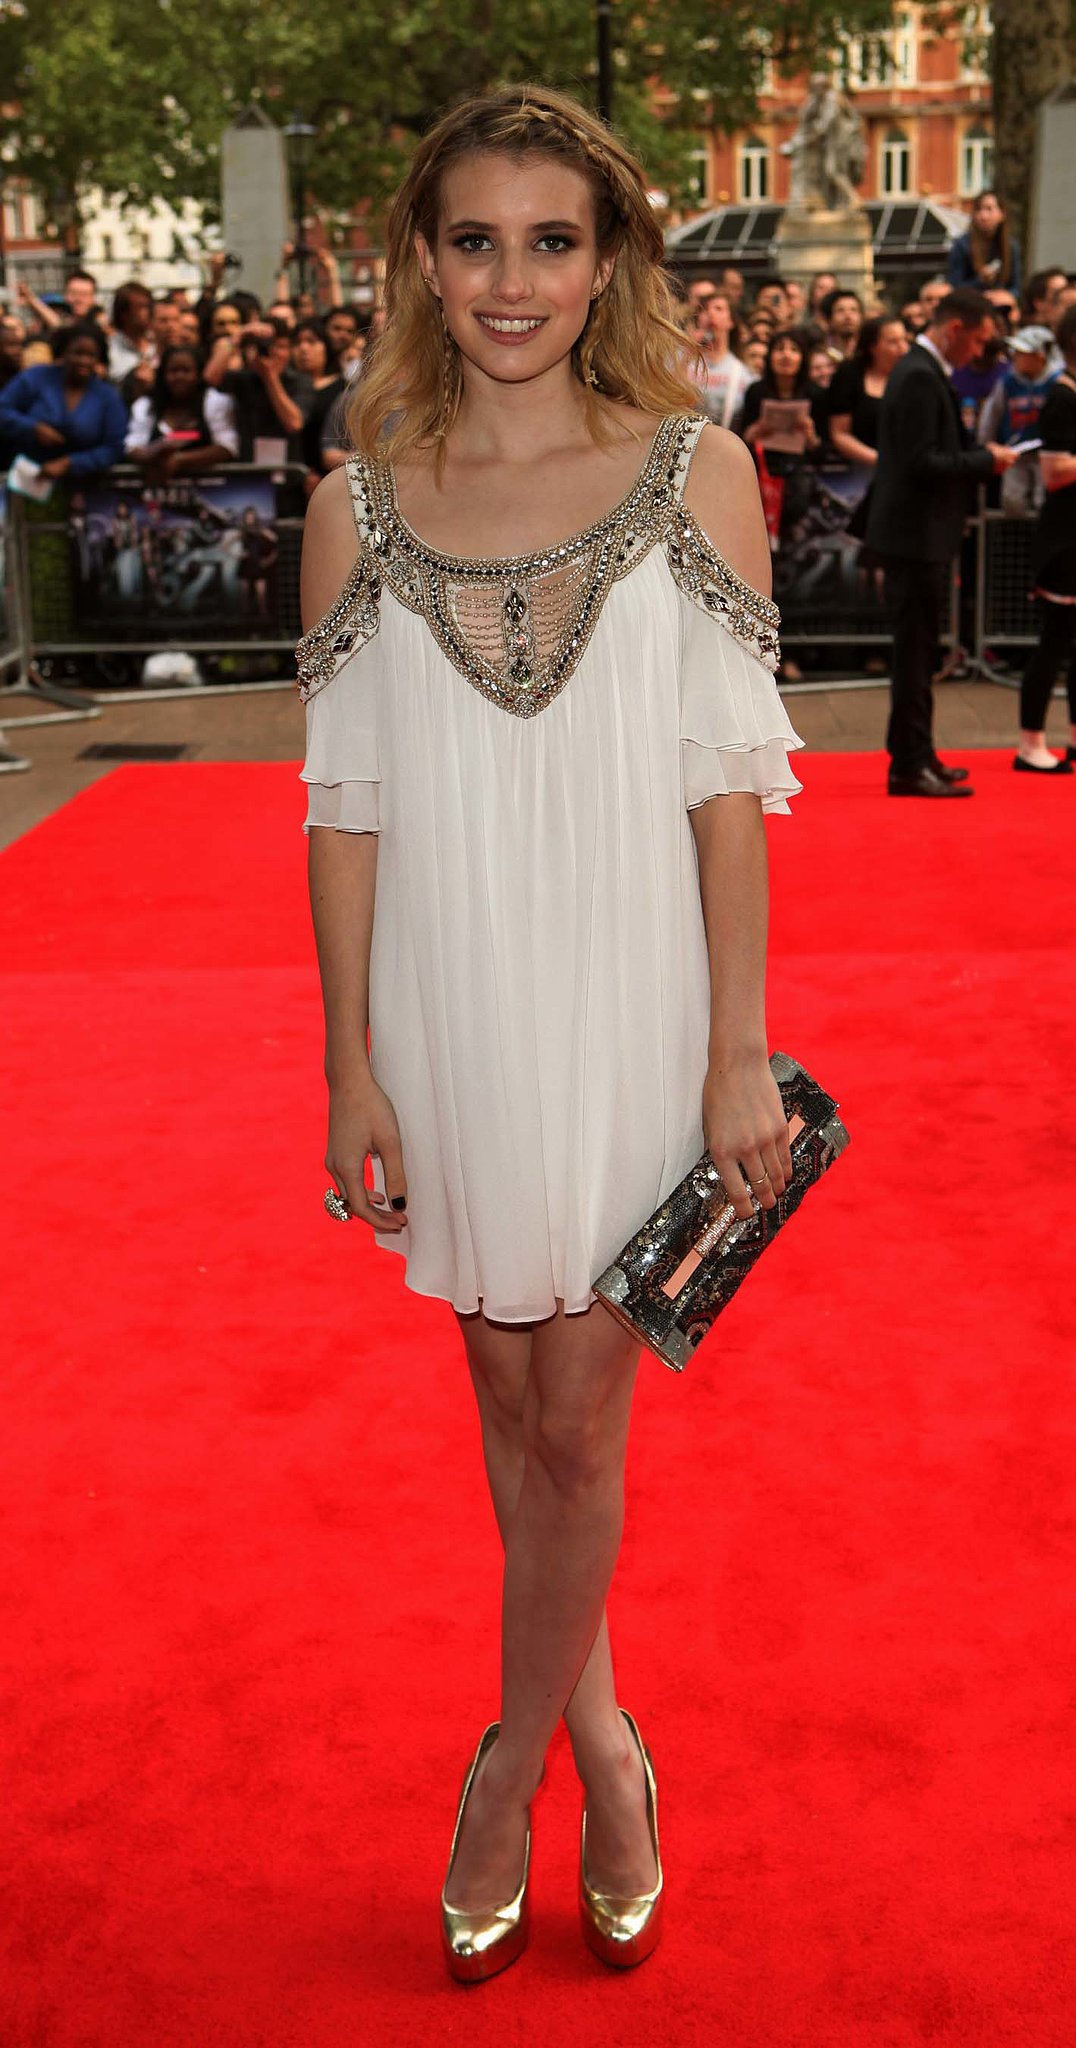 She wore an ethereal Temperley London look, complete with romantic shoulders and hair to match, at the world premiere of Valentine's Day in 2010.